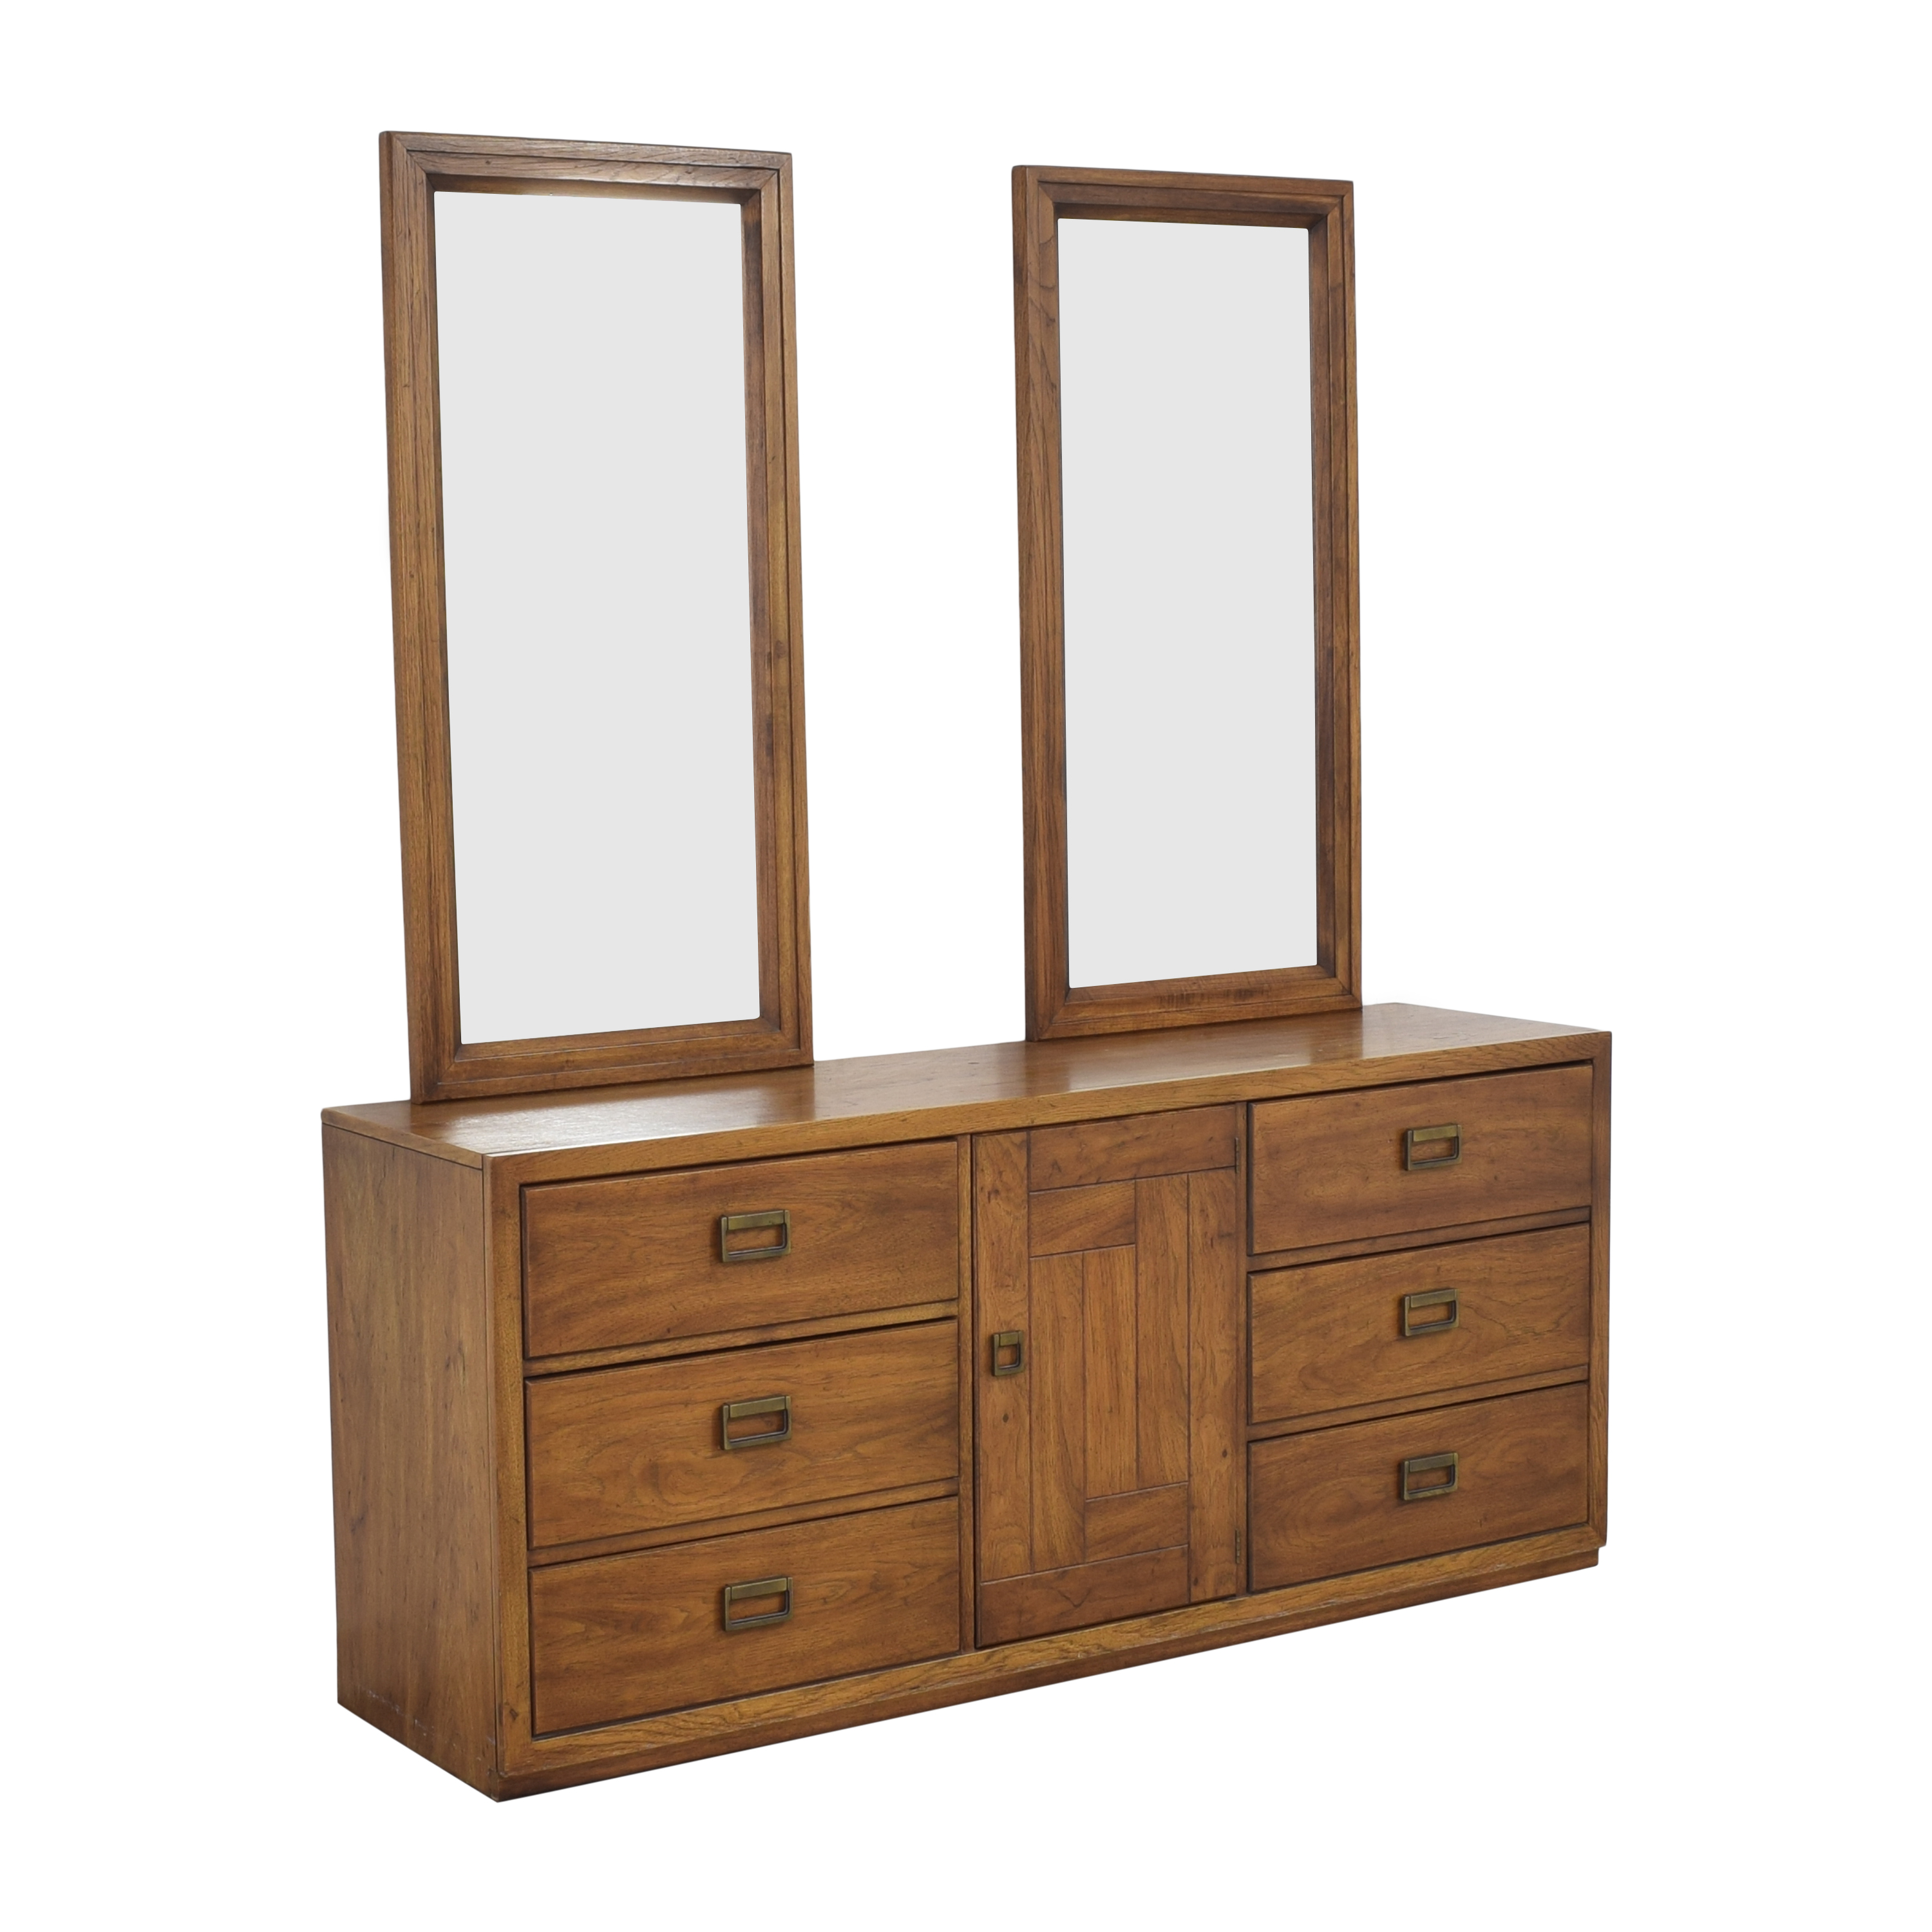 Huntley Triple Dresser with Mirrors / Dressers